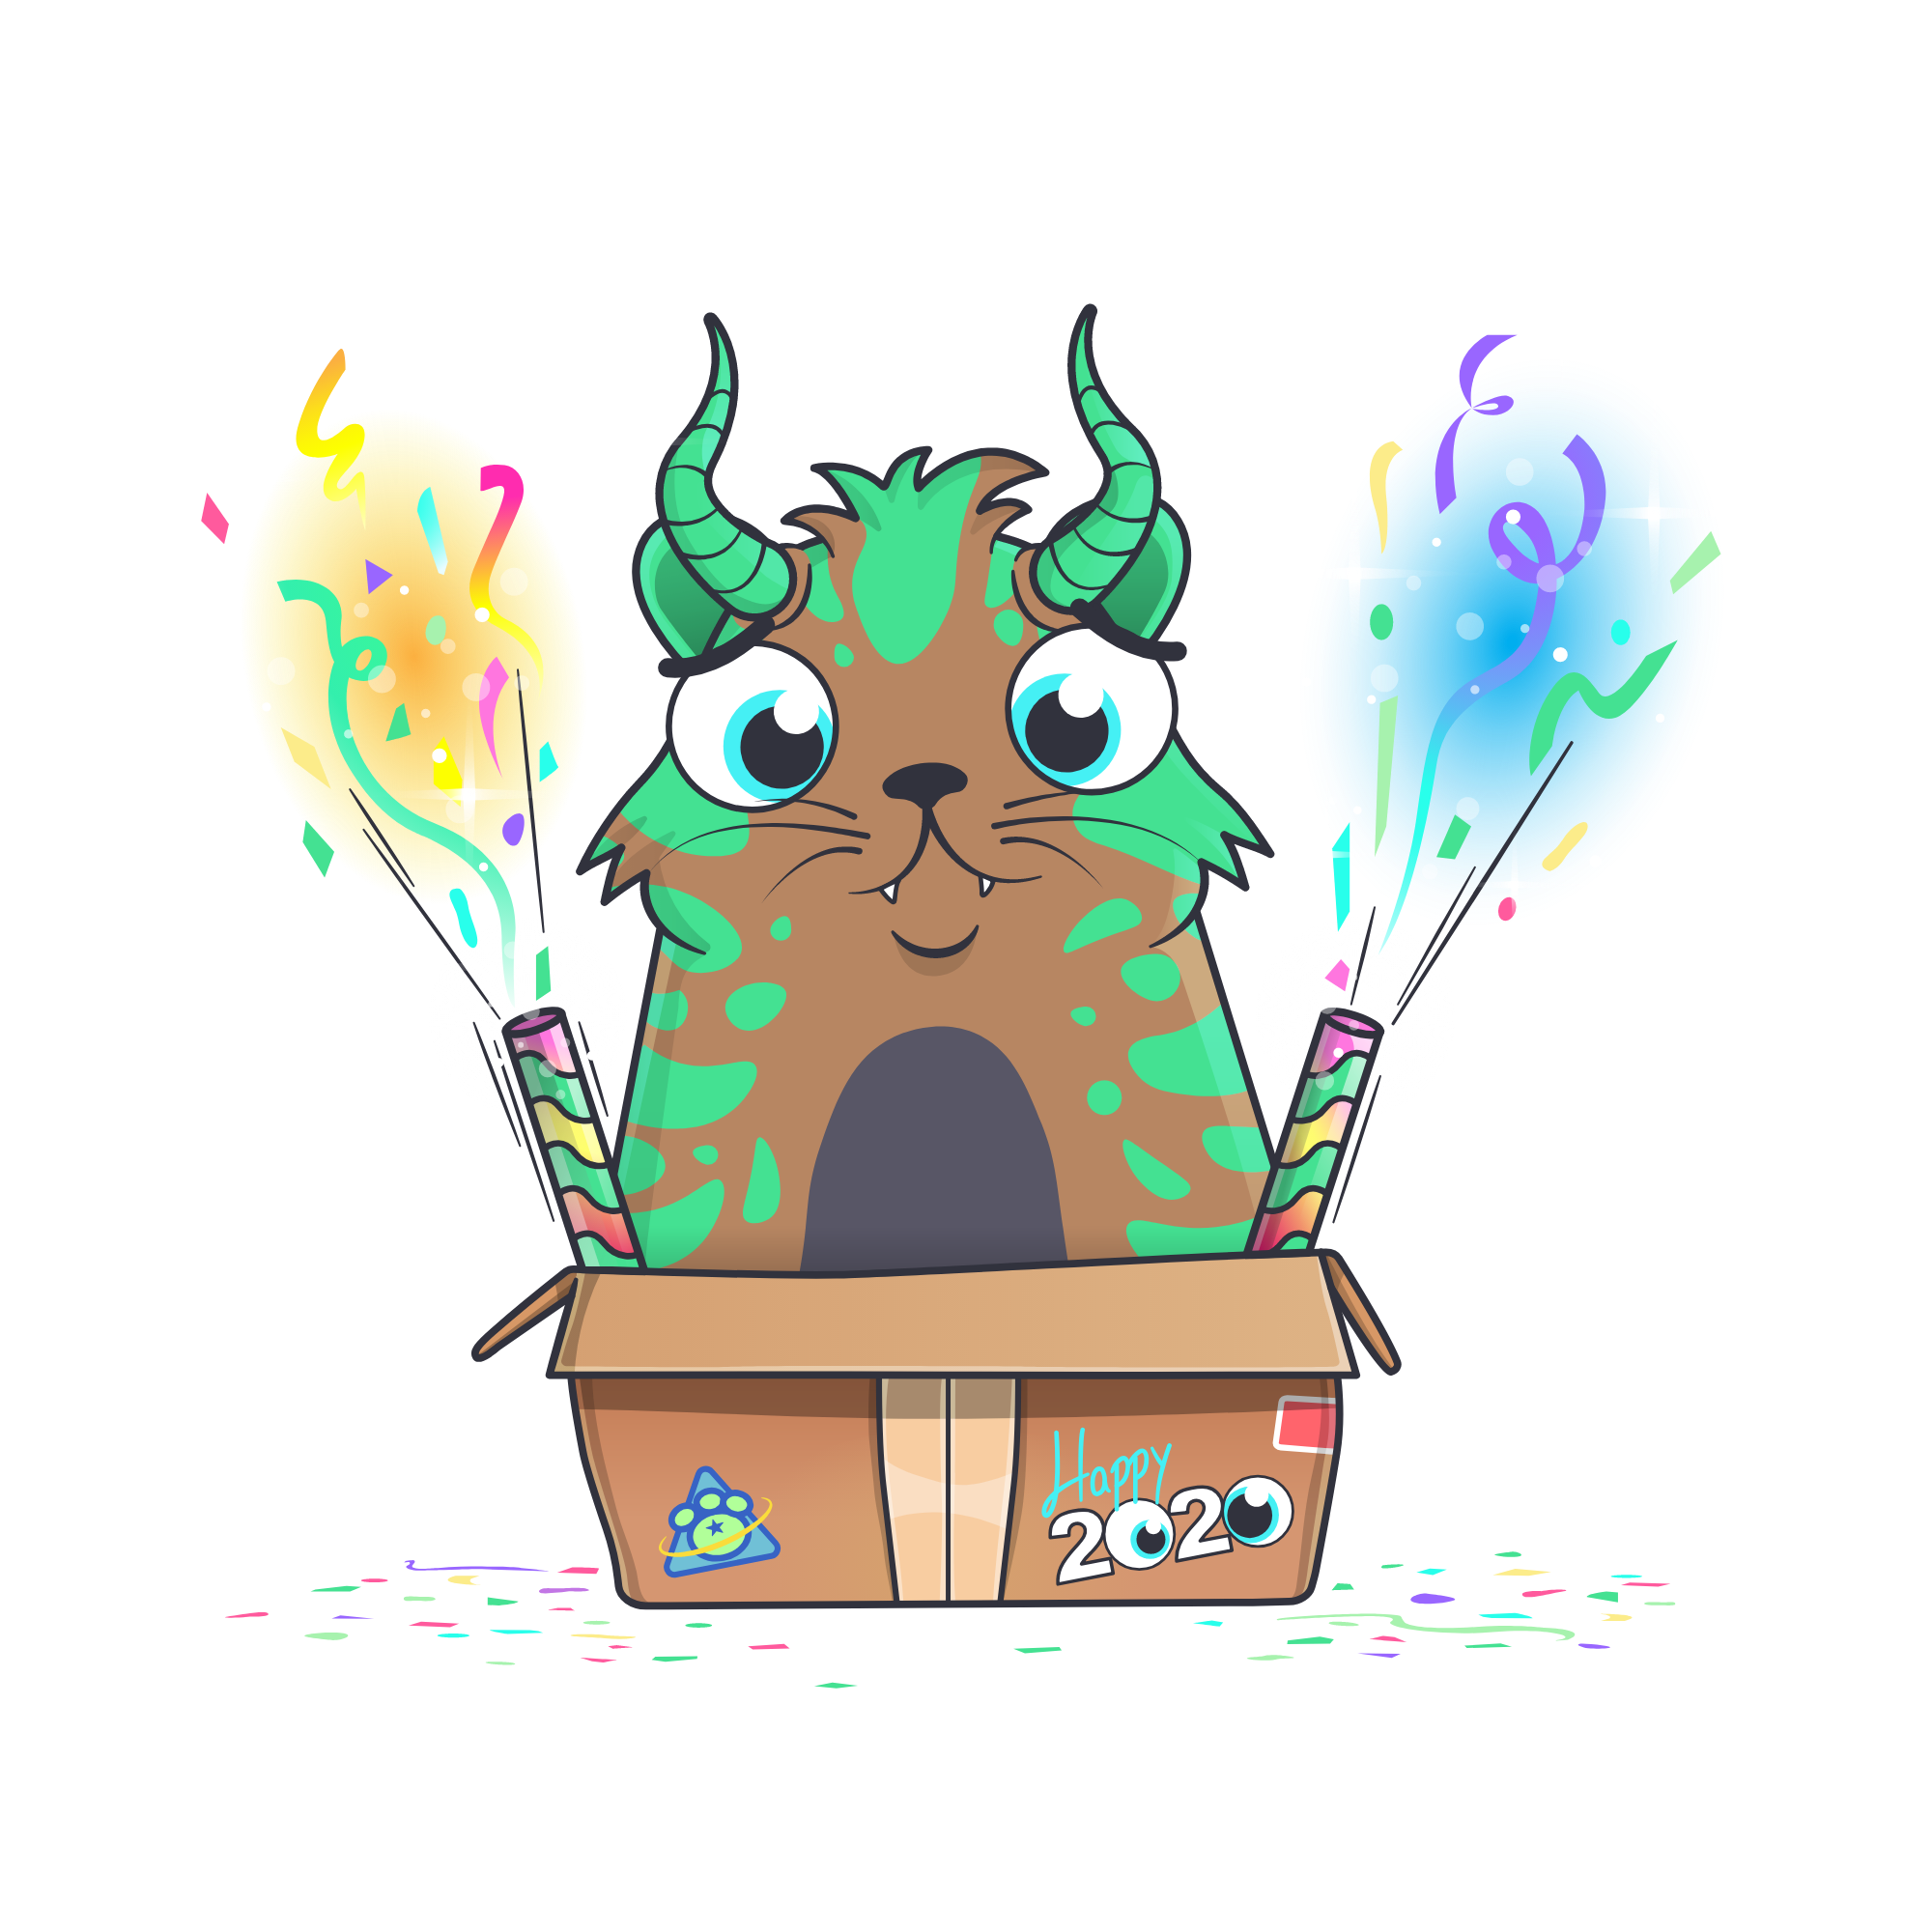 cryptokitty #1806975